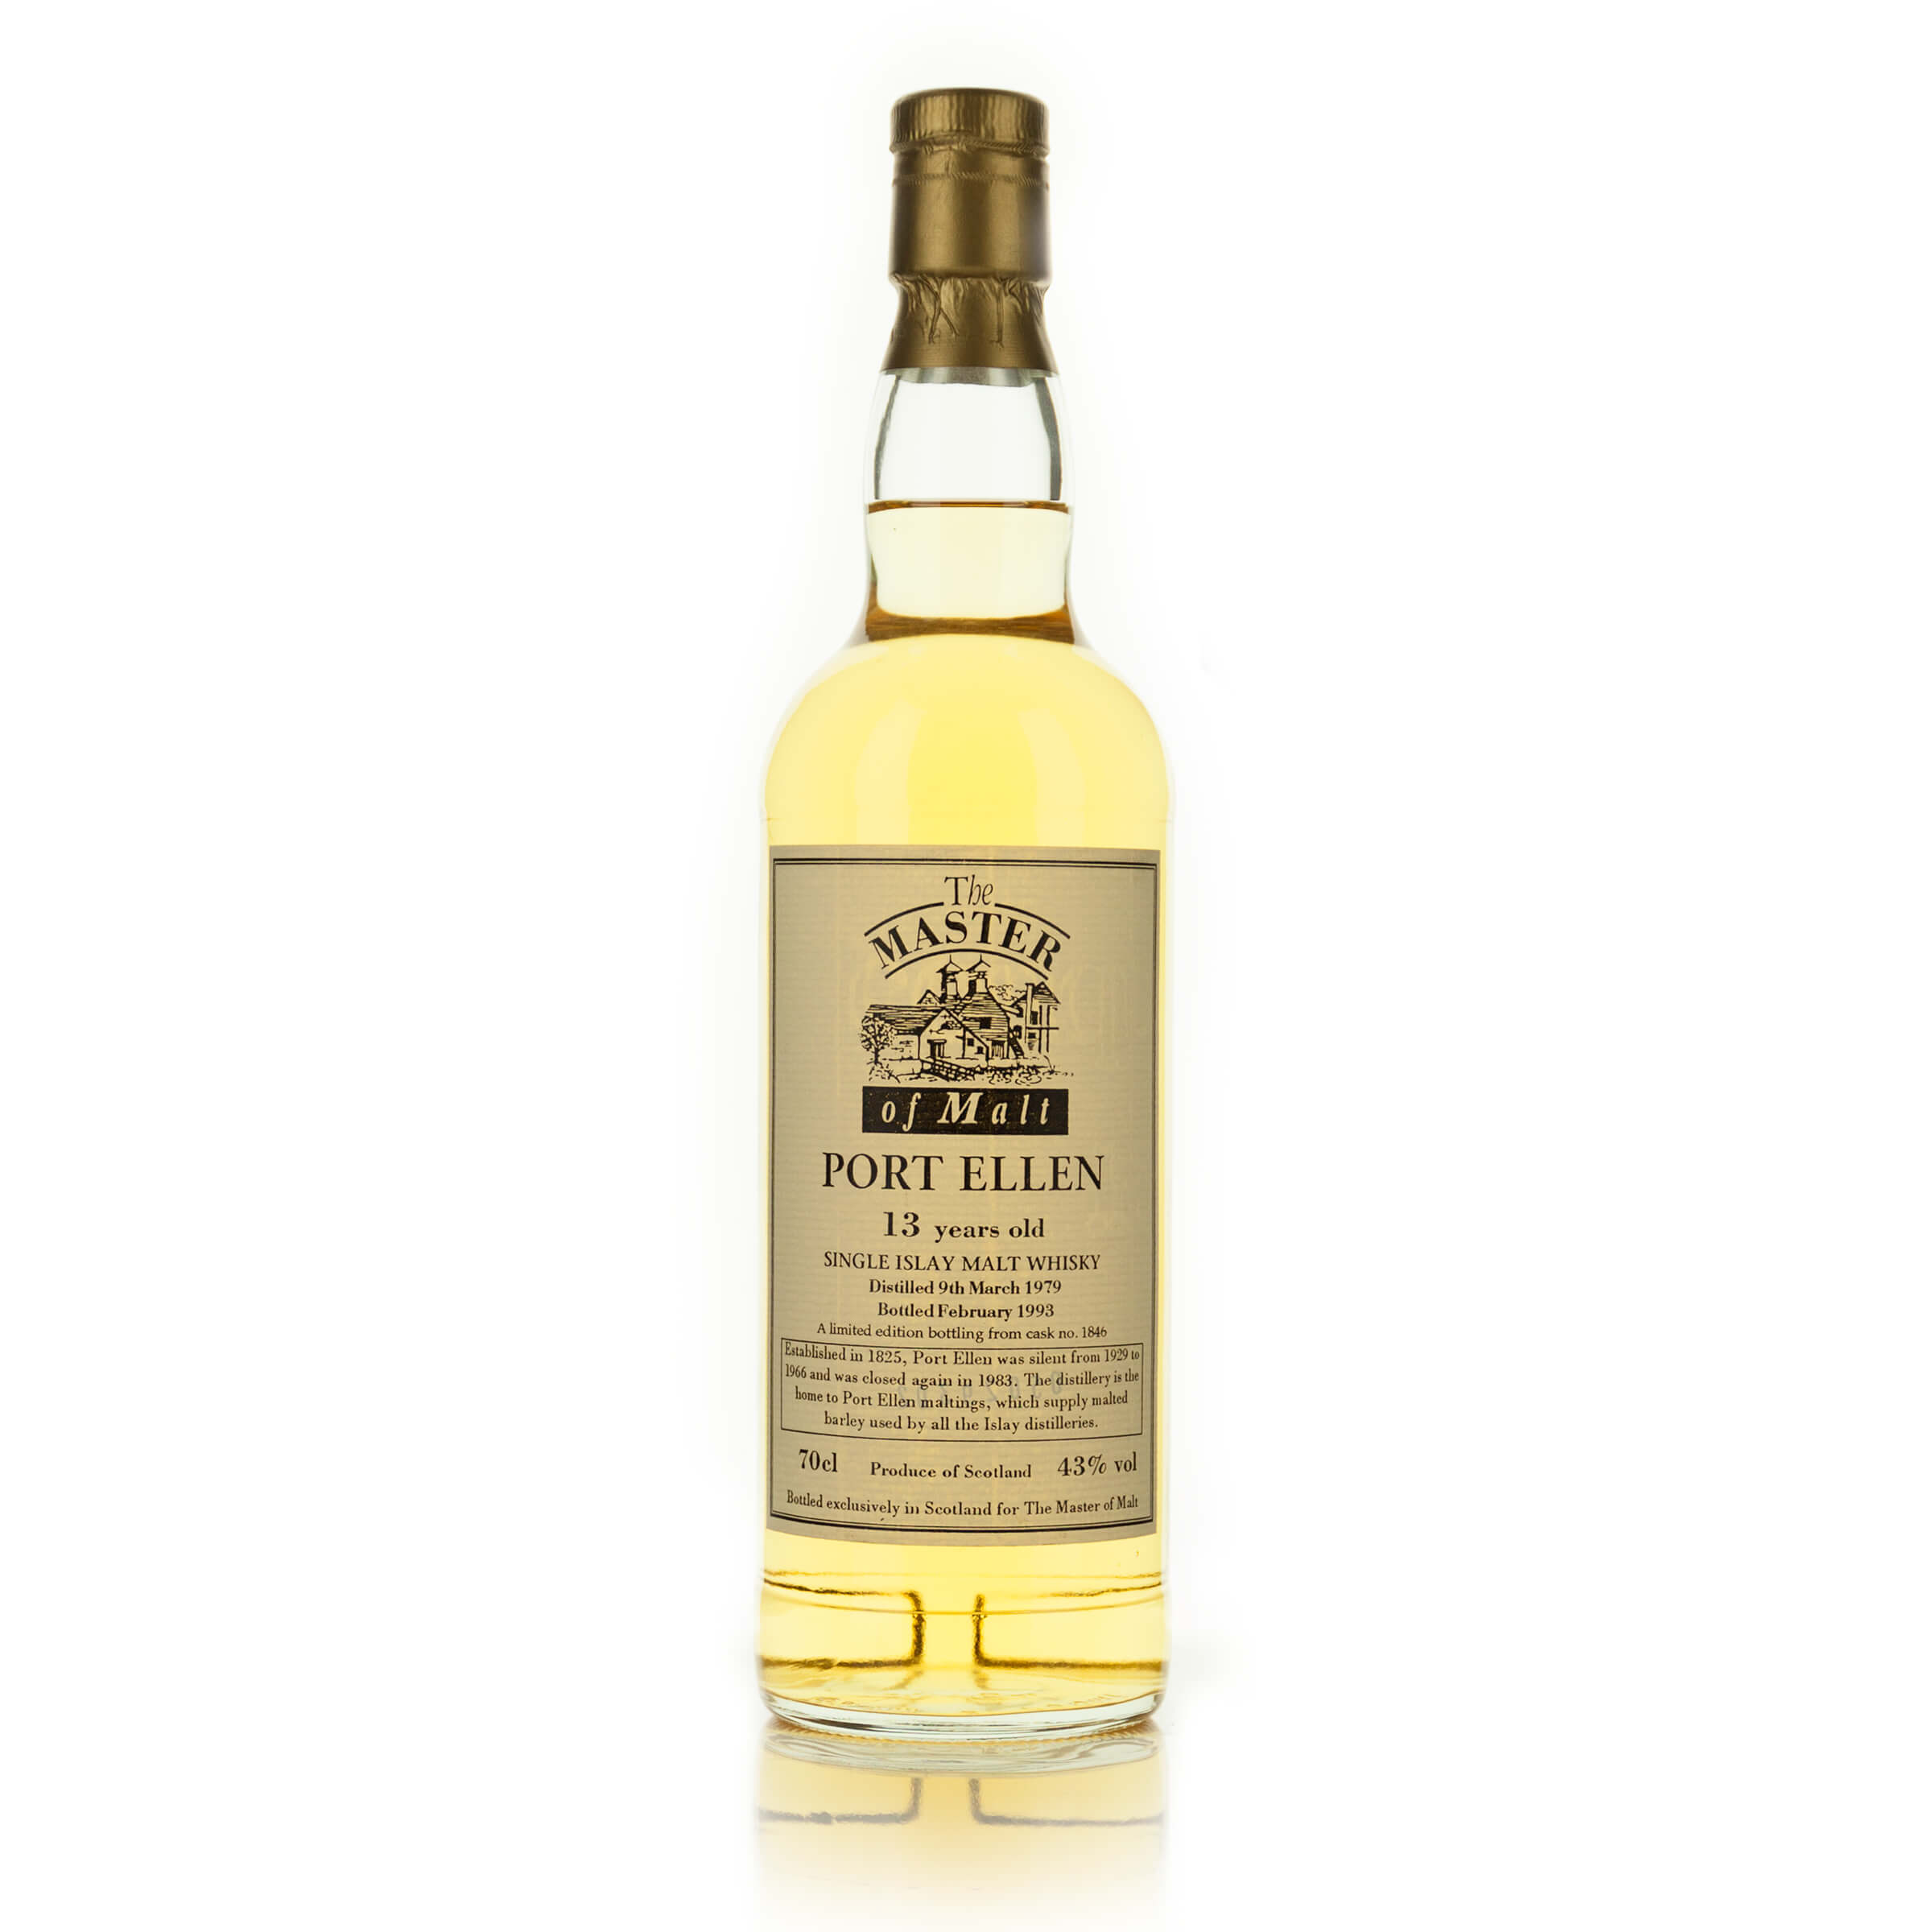 PORT ELLEN SINGLE ISLAY MALT SCOTCH WHISKY 13 YEARS (ONE 70 CL)